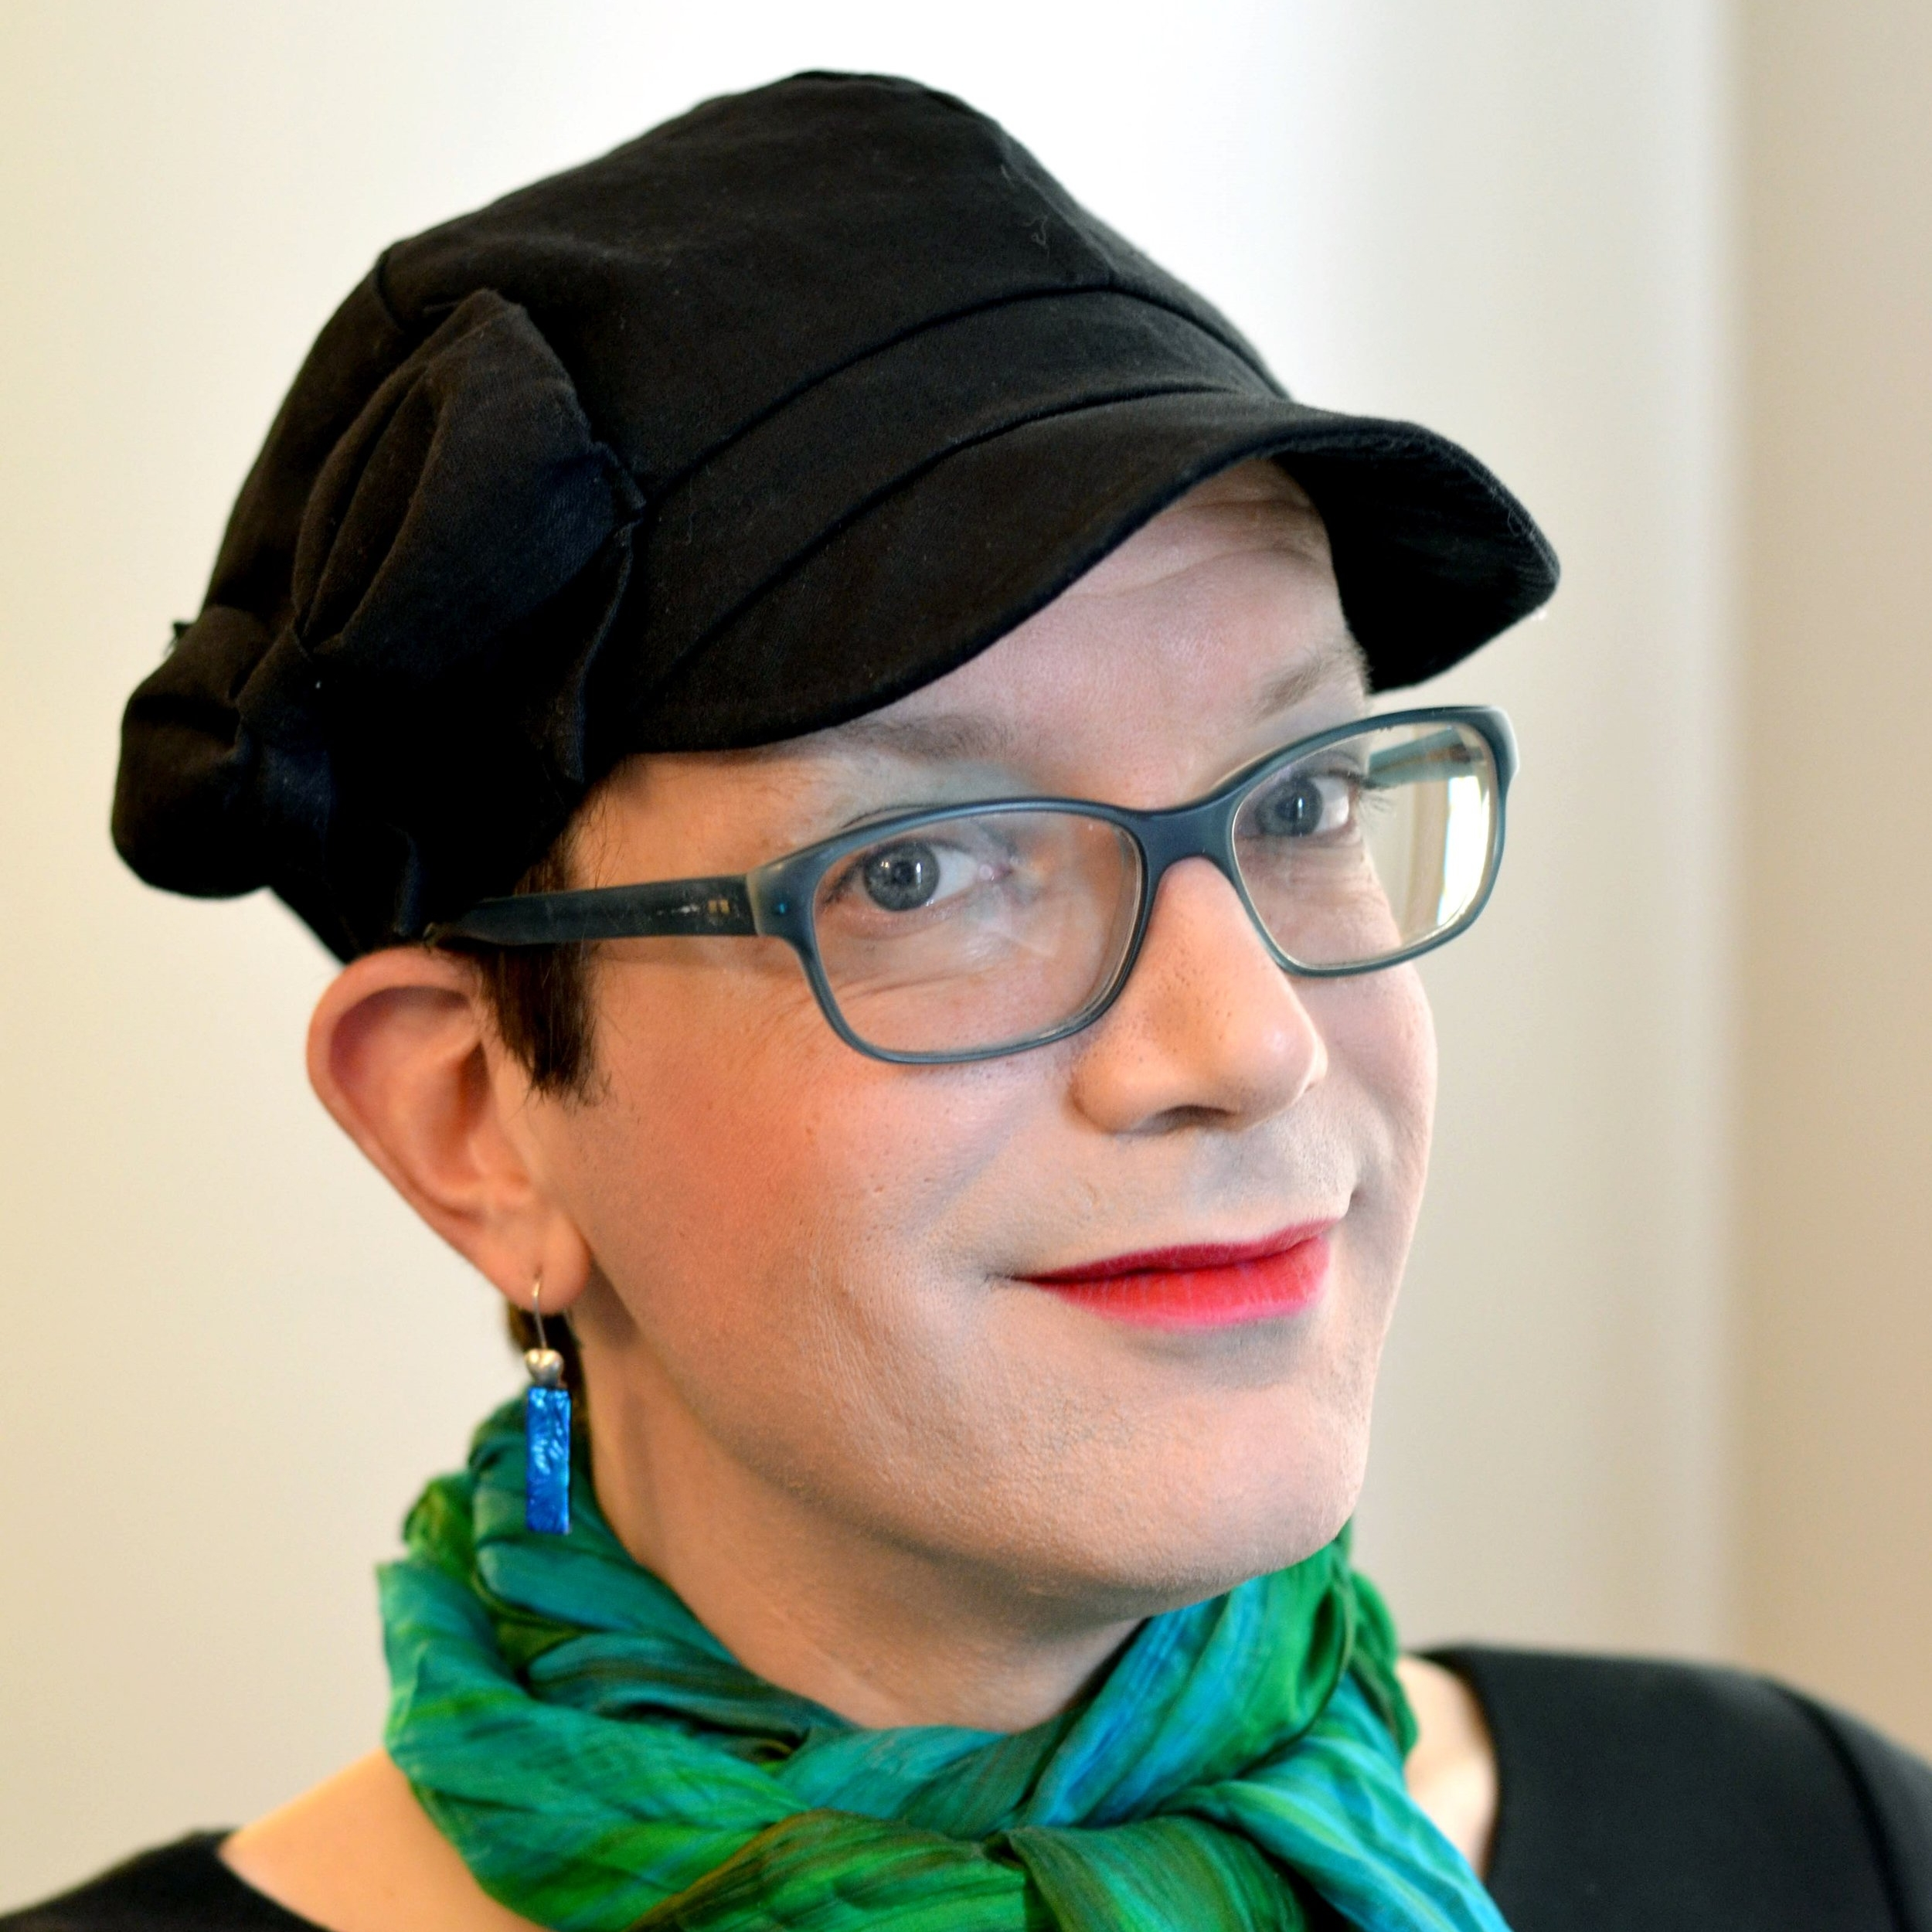 Stephanie Burt is Professor of English at Harvard and the author of several books of poetry and literary criticism, most recently Advice from the Lights (2017) and The Poem Is You: 60 Contemporary American Poems and How to Read Them (2016). Her reviews and essays appear regularly in several journals in the US, the UK and New Zealand, among them the New York Times Book Review and the London Review of Books. Someday she wants to write comic books.  Photo by Jessica Bennett, 2017.